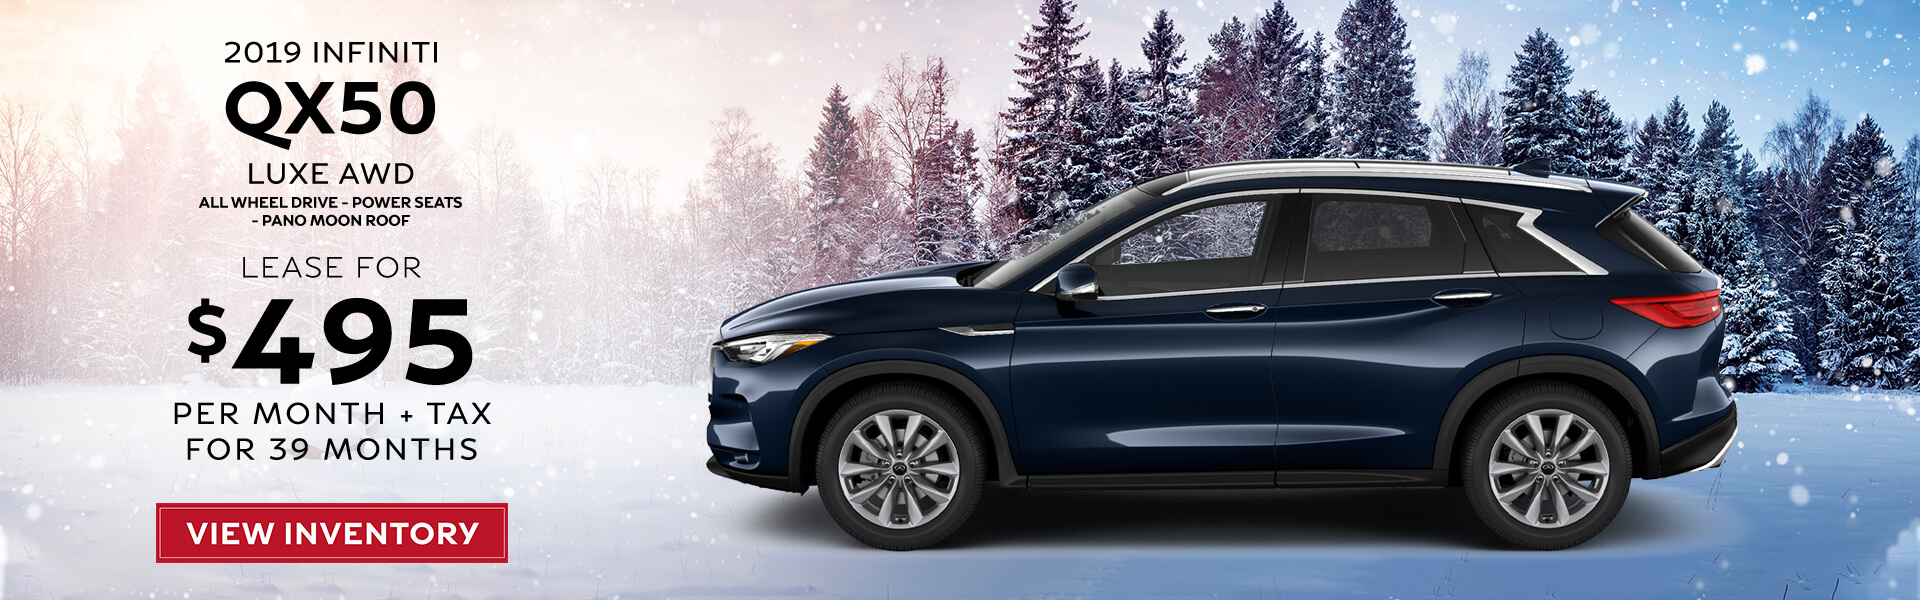 QX50 - Lease for 495